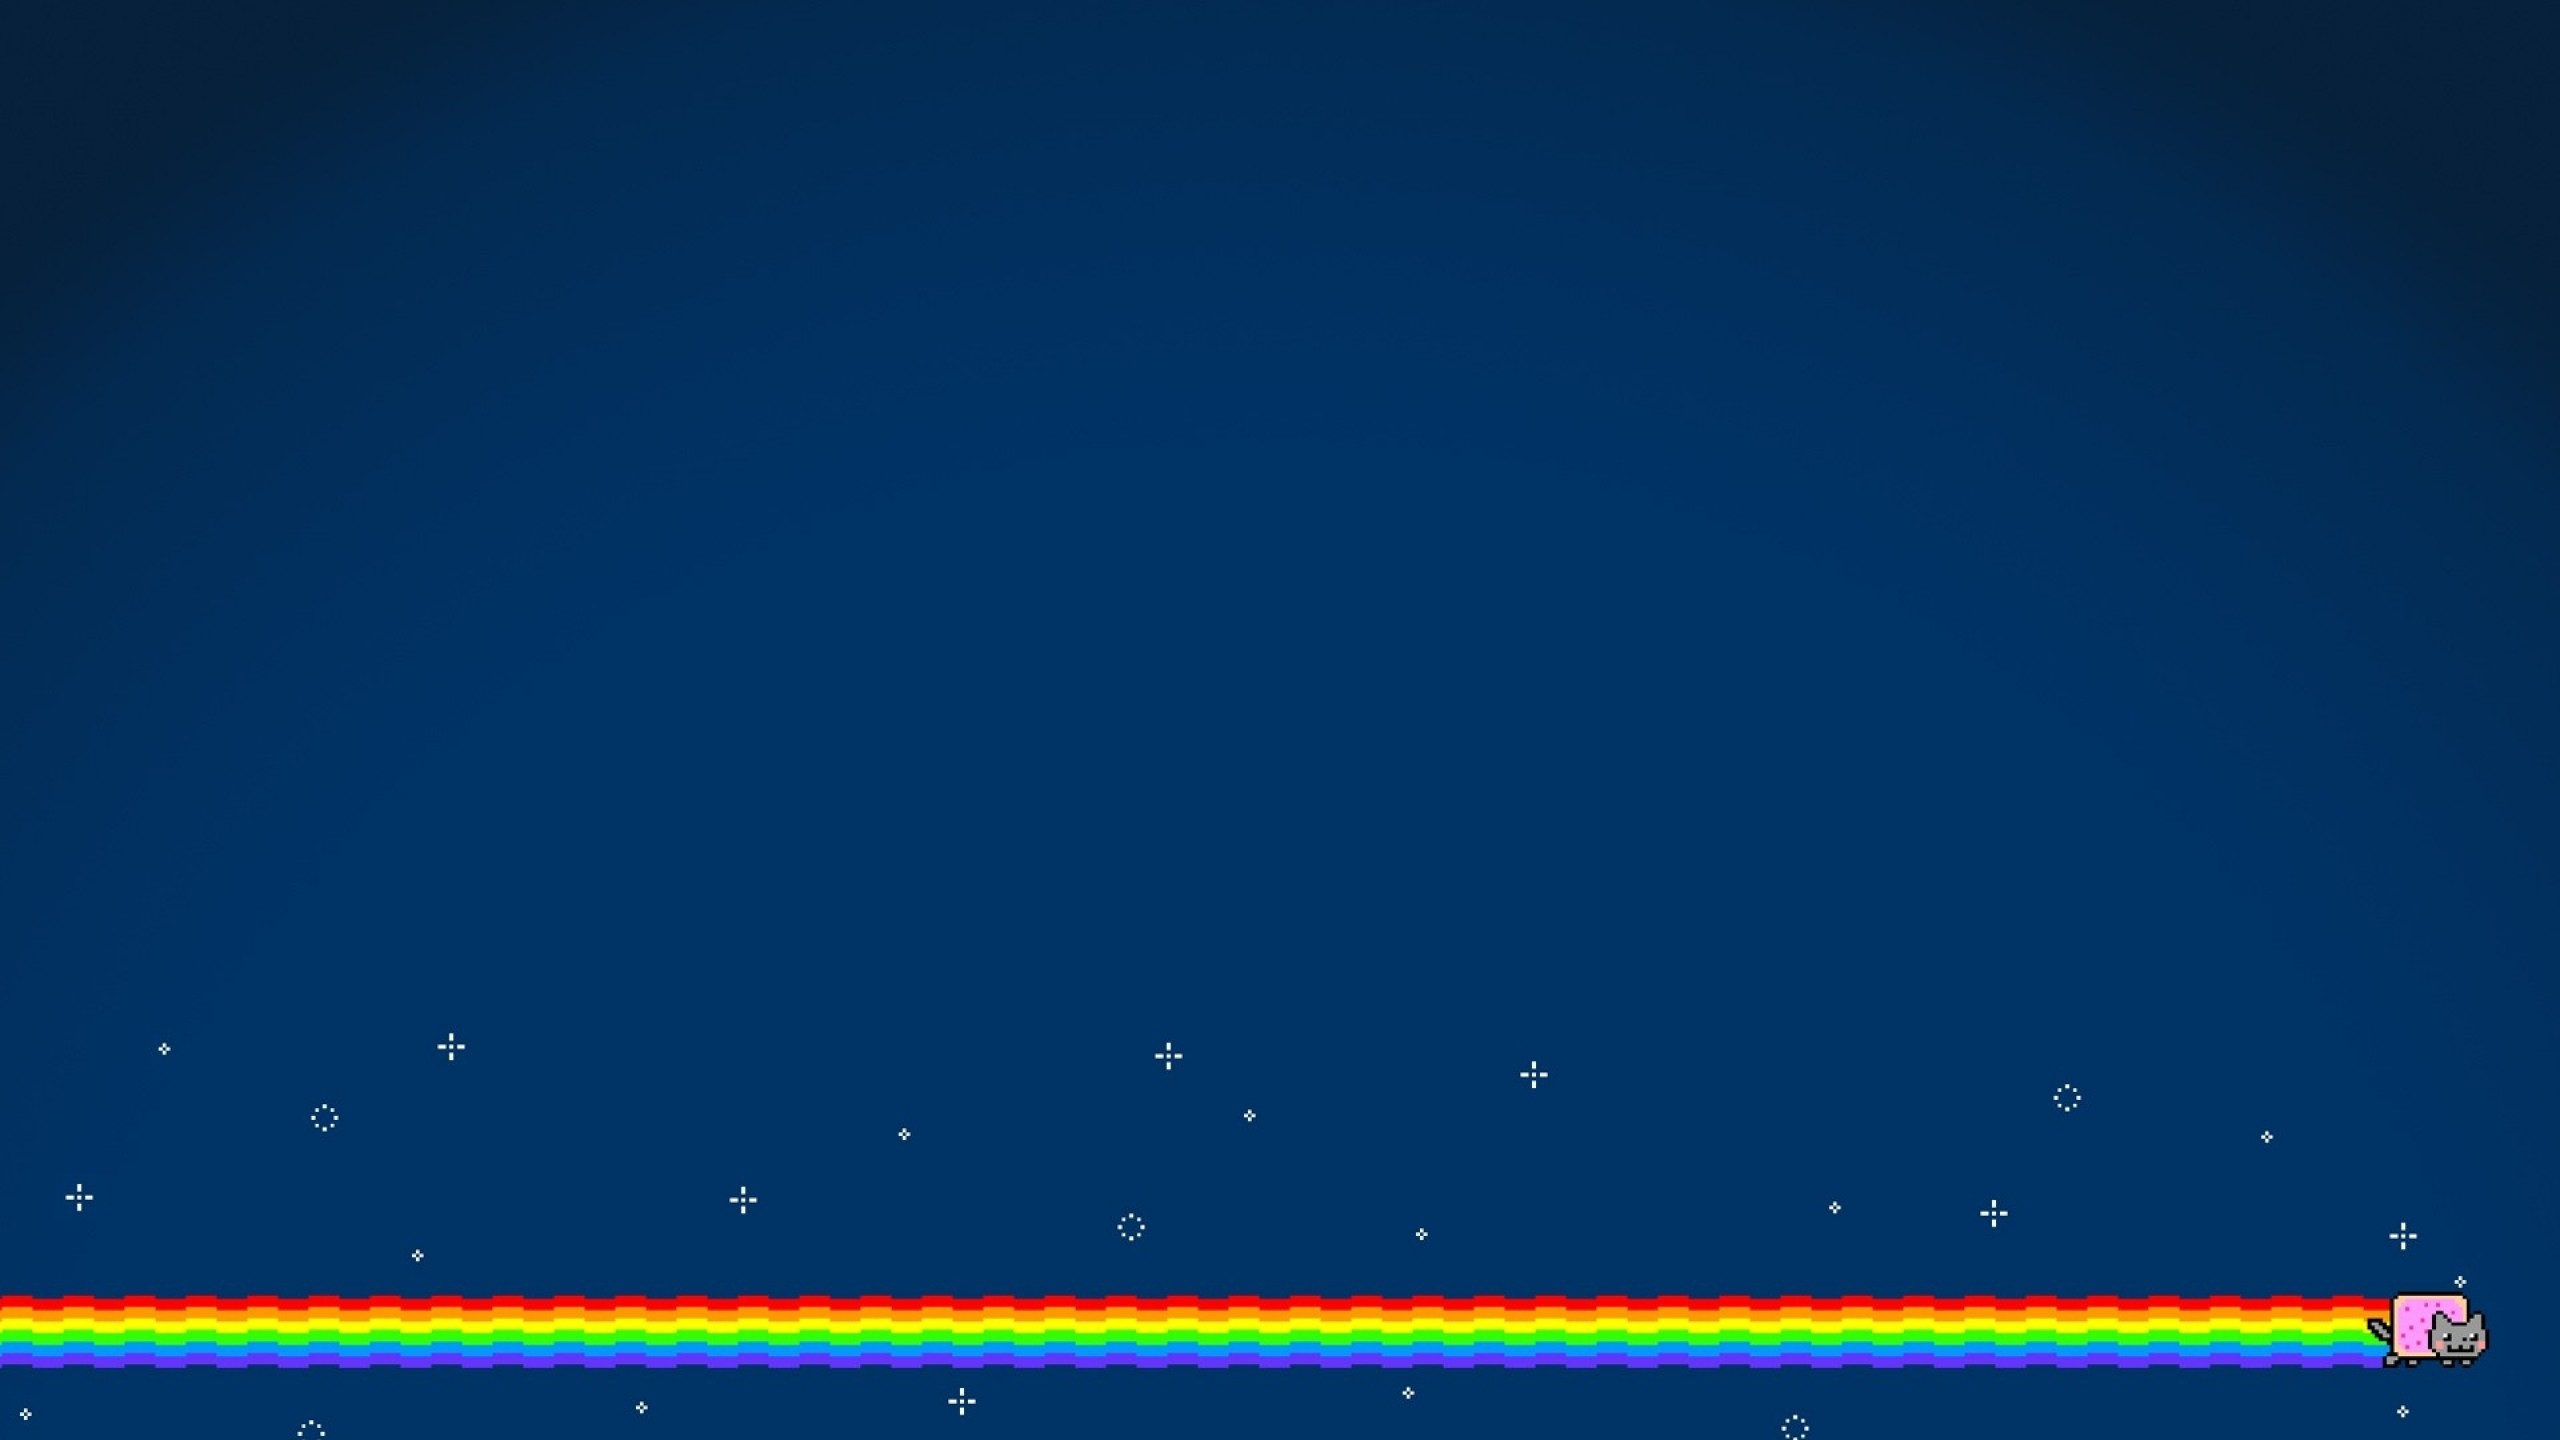 nyan cat wallpapers 74 images